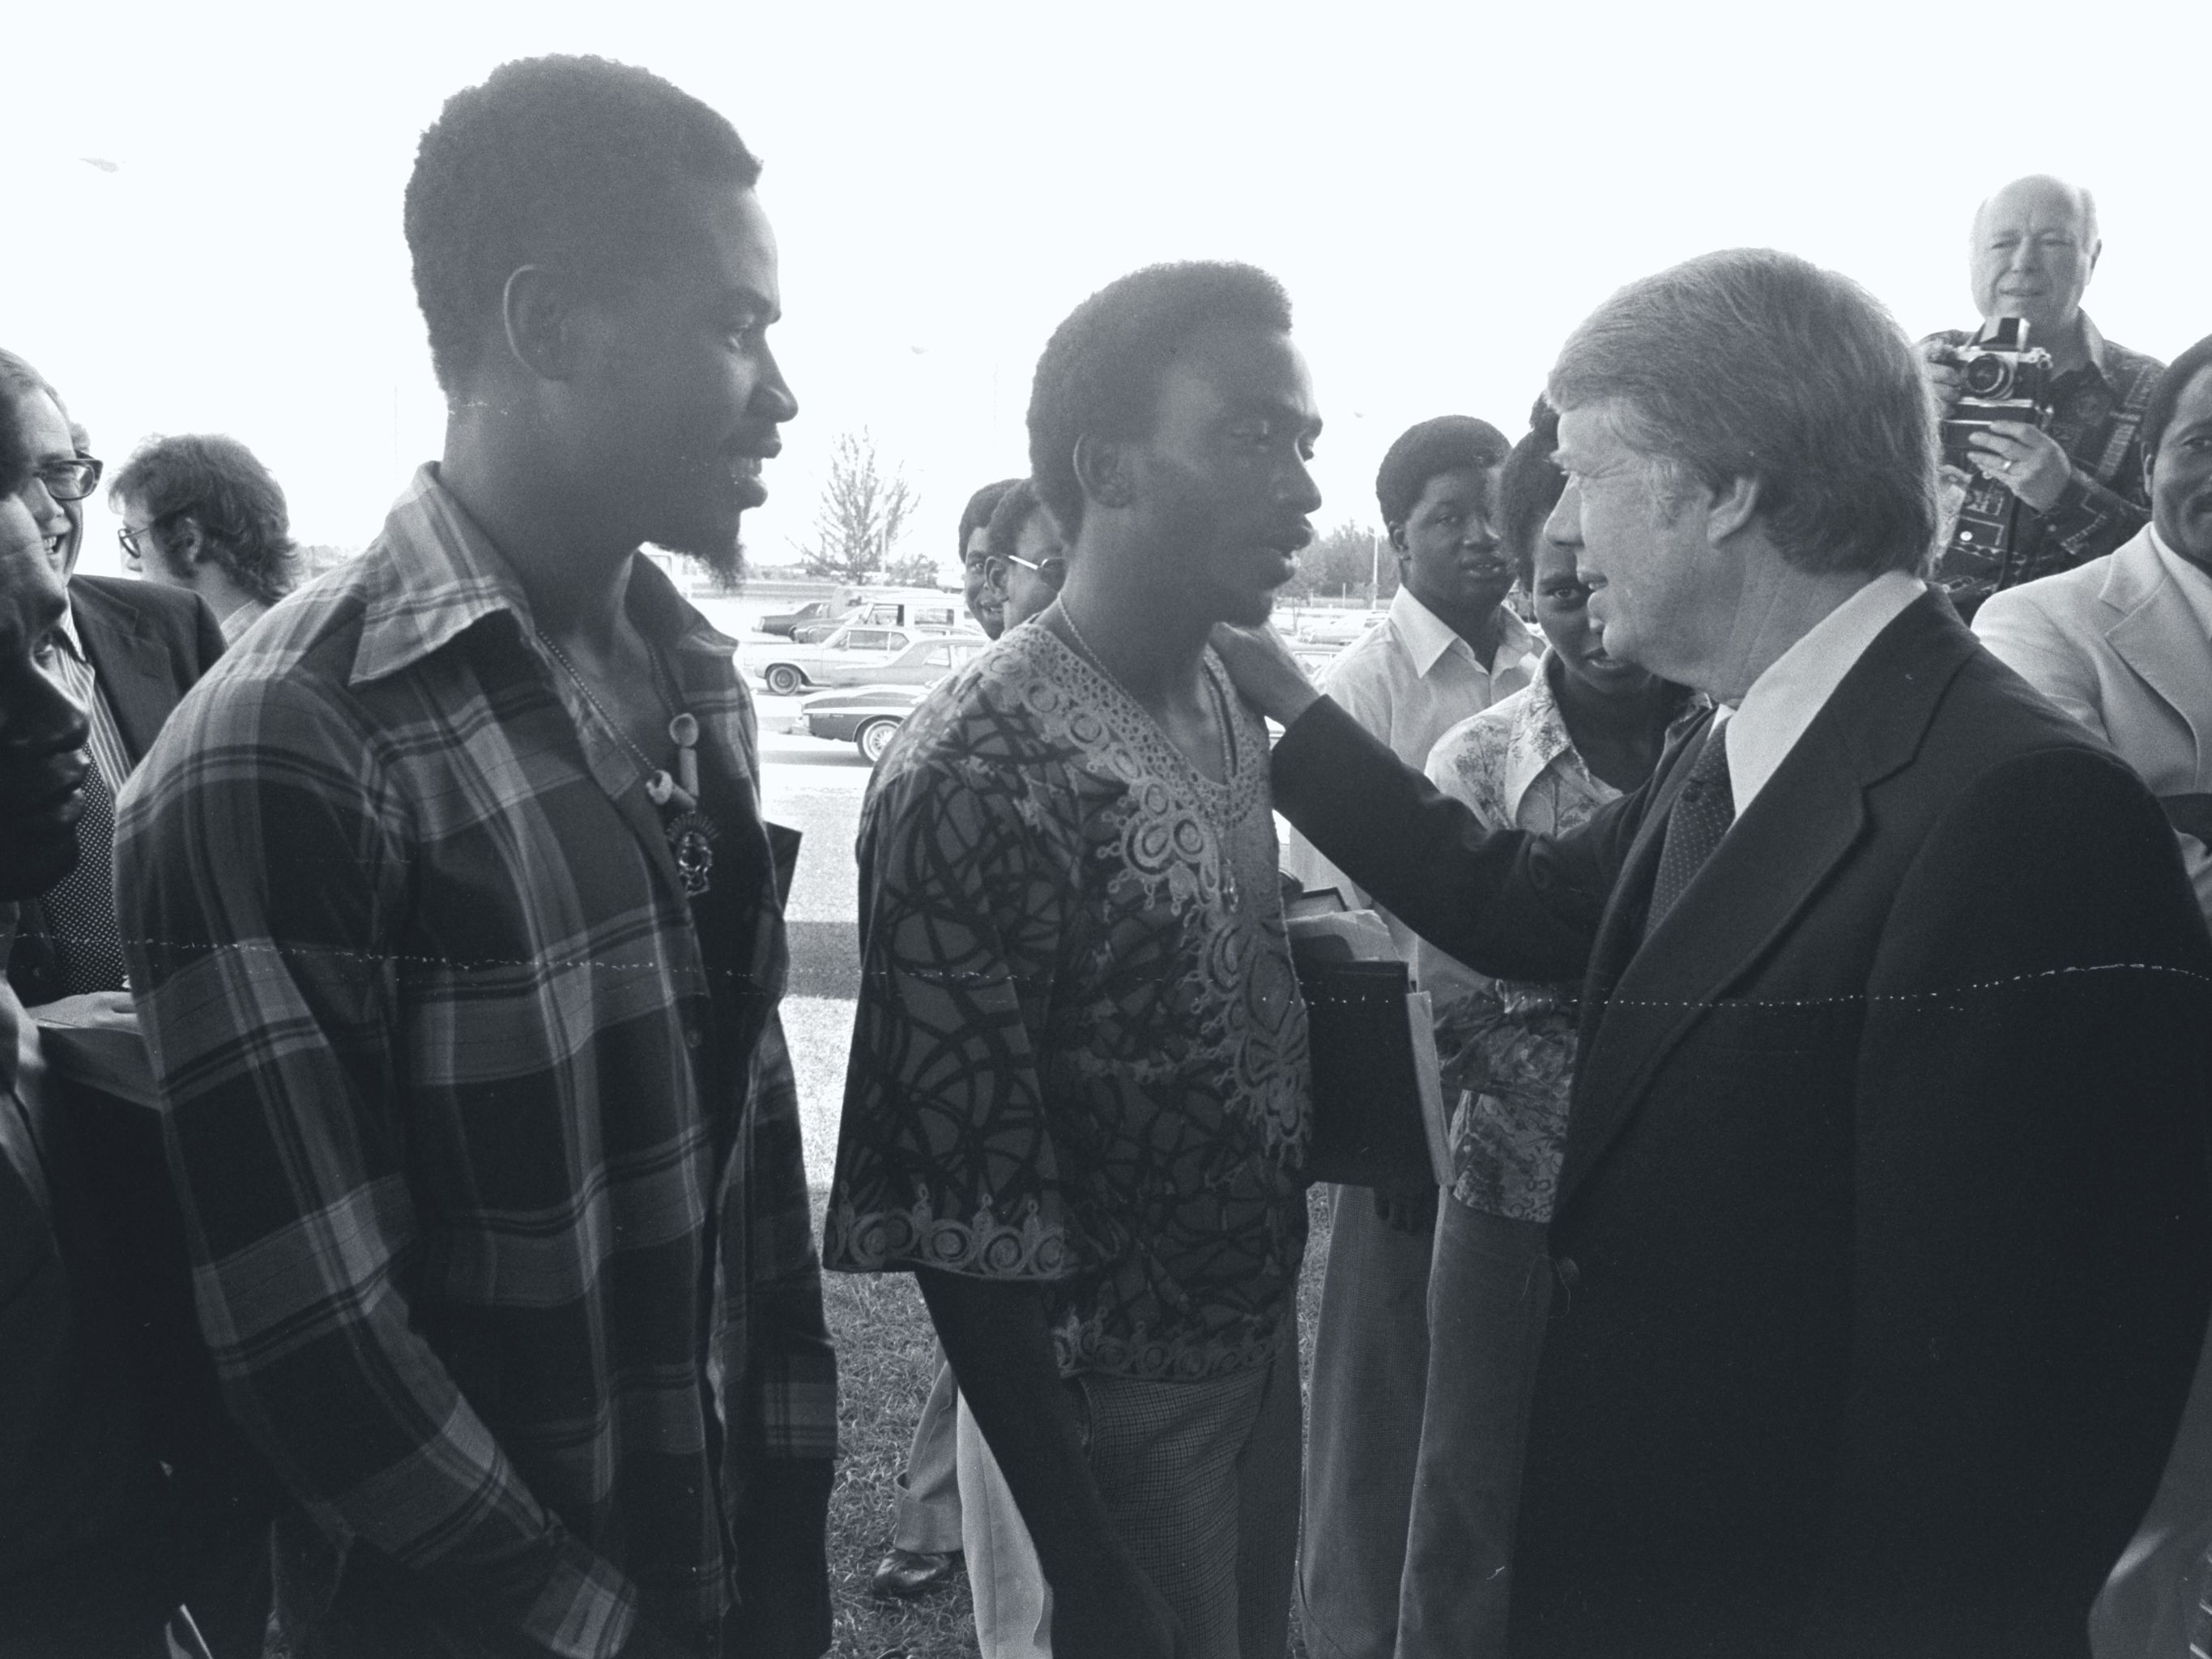 President Jimmy Carter S Record On Civil Rights And Race Relations